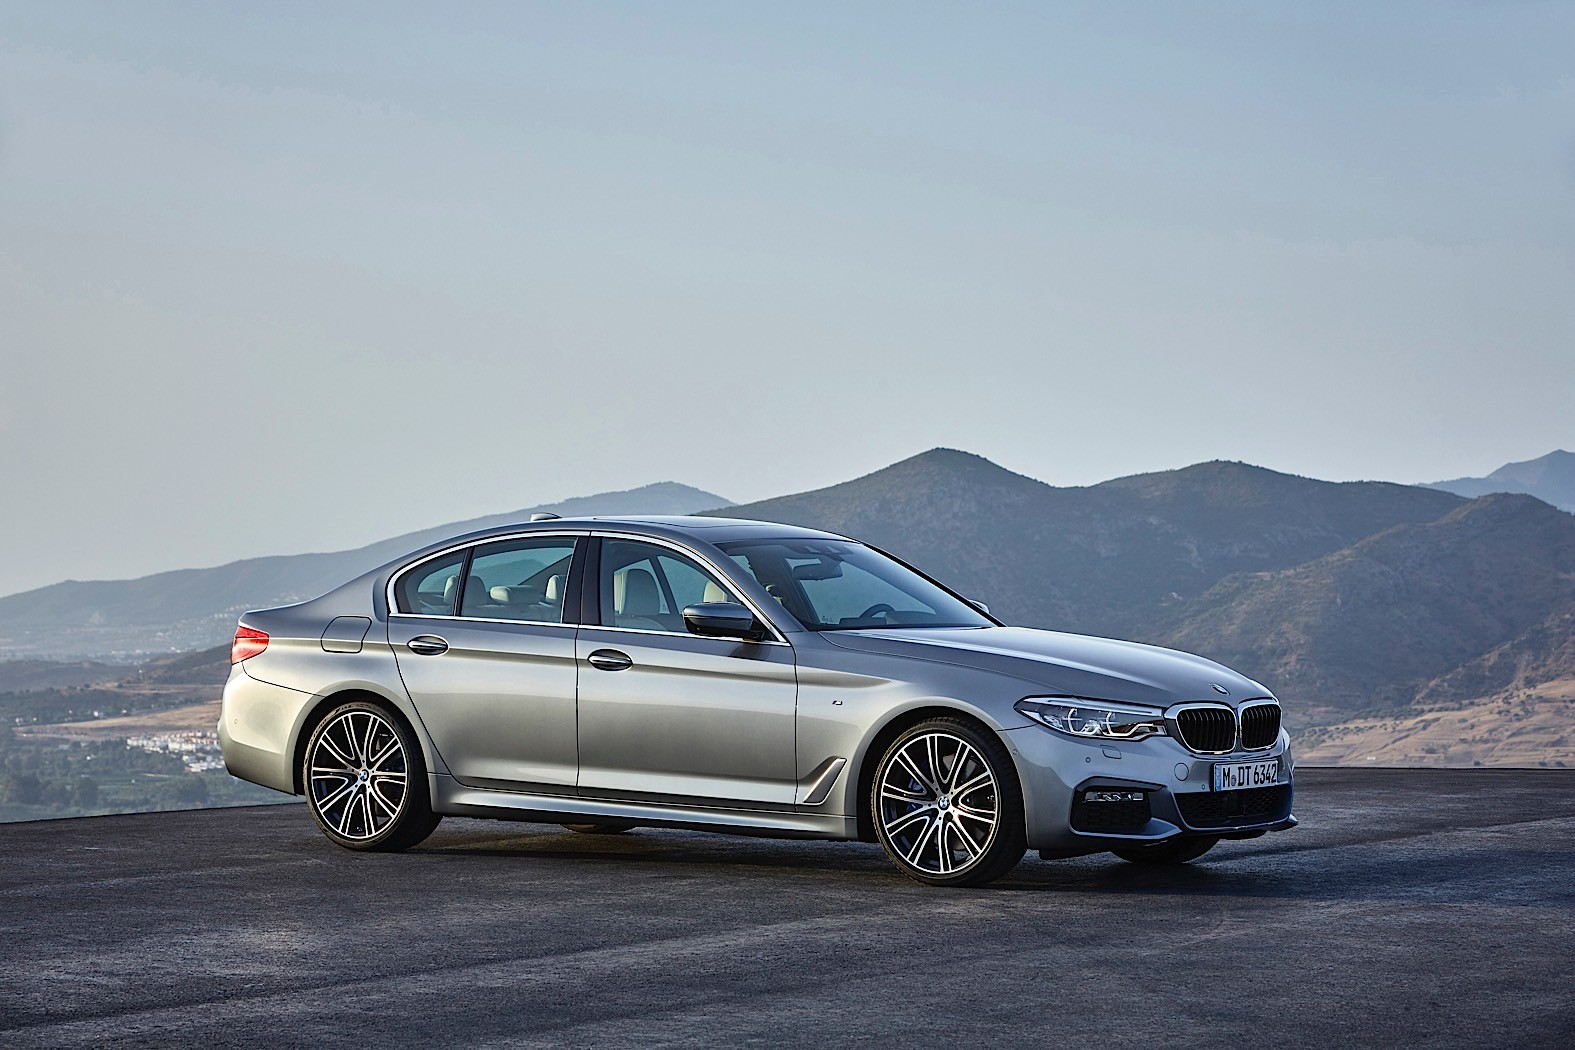 2017 BMW M550i xDrive (G30) Is Quicker Than the F10 M5 to ...